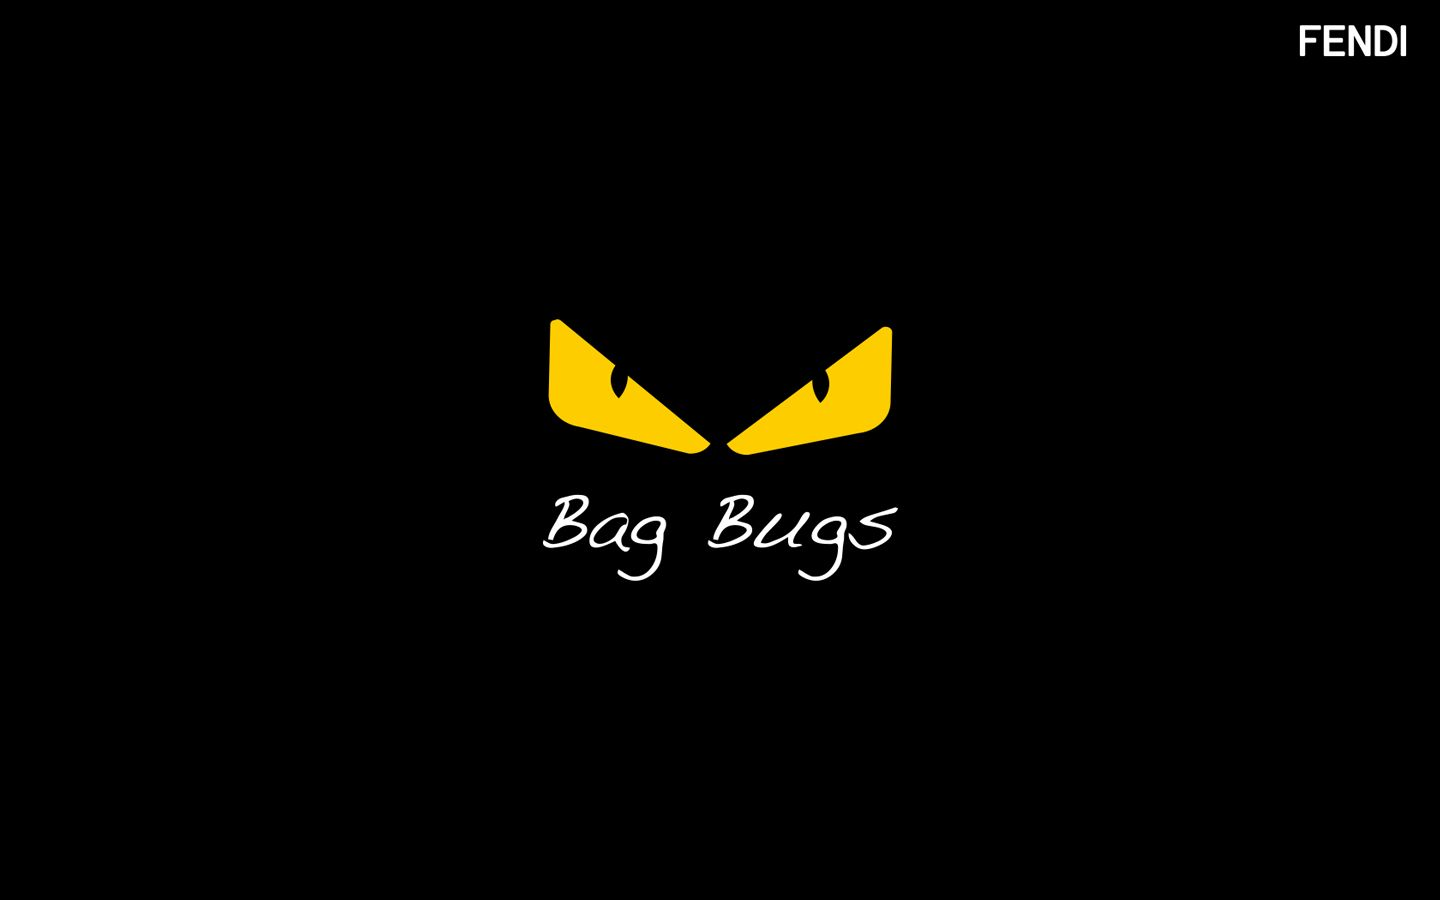 Join the bag Bags mania and download your Bag-Bugged ...